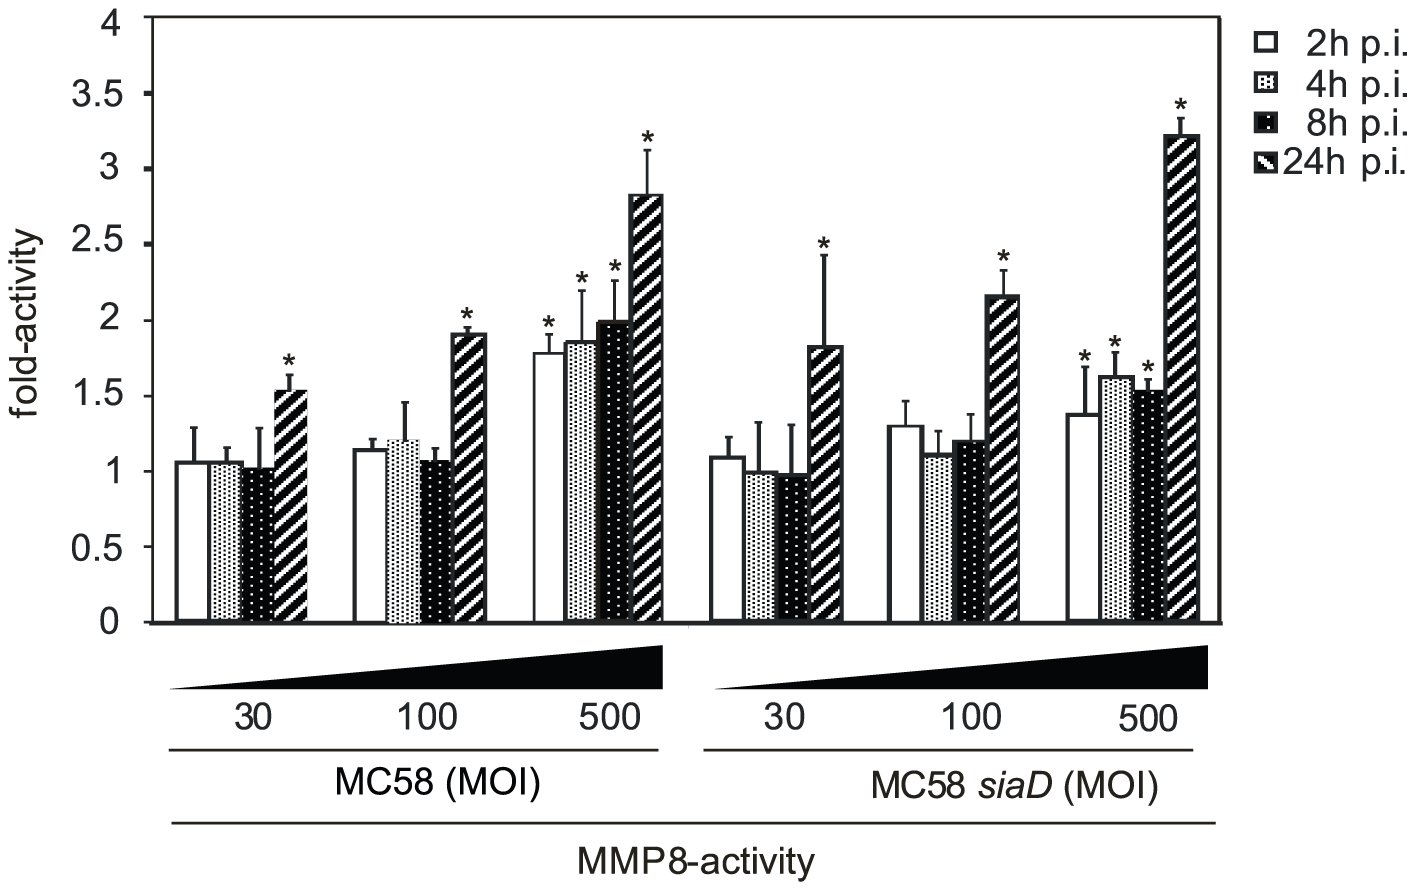 HBMEC were incubated with MC58 and MC58 <i>siaD</i> using indicated concentration of bacteria (MOIs of 10, 30 and 500) and matrix metalloproteinase (MMP)-8 activity was measured in supernatants collected from infected HBMEC at 2, 4, 8, and 24 h p.i. using the Sensolyte 520 MMP-8 assay kit.